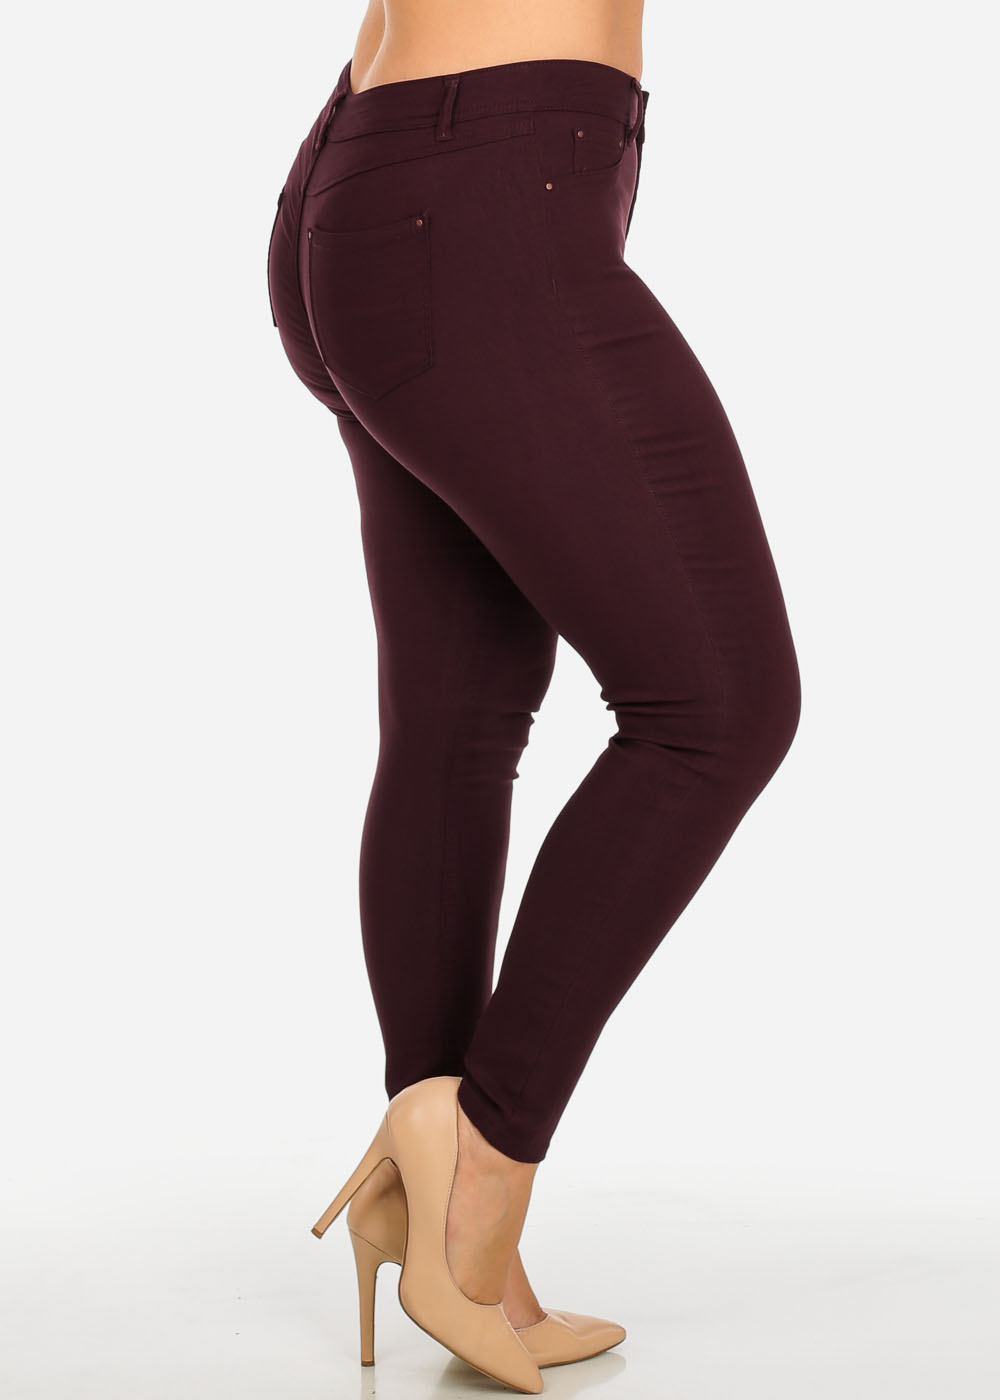 Womens Juniors Stylish Mid Waist Burgundy One Button Stretchy Skinny Pants 30806J